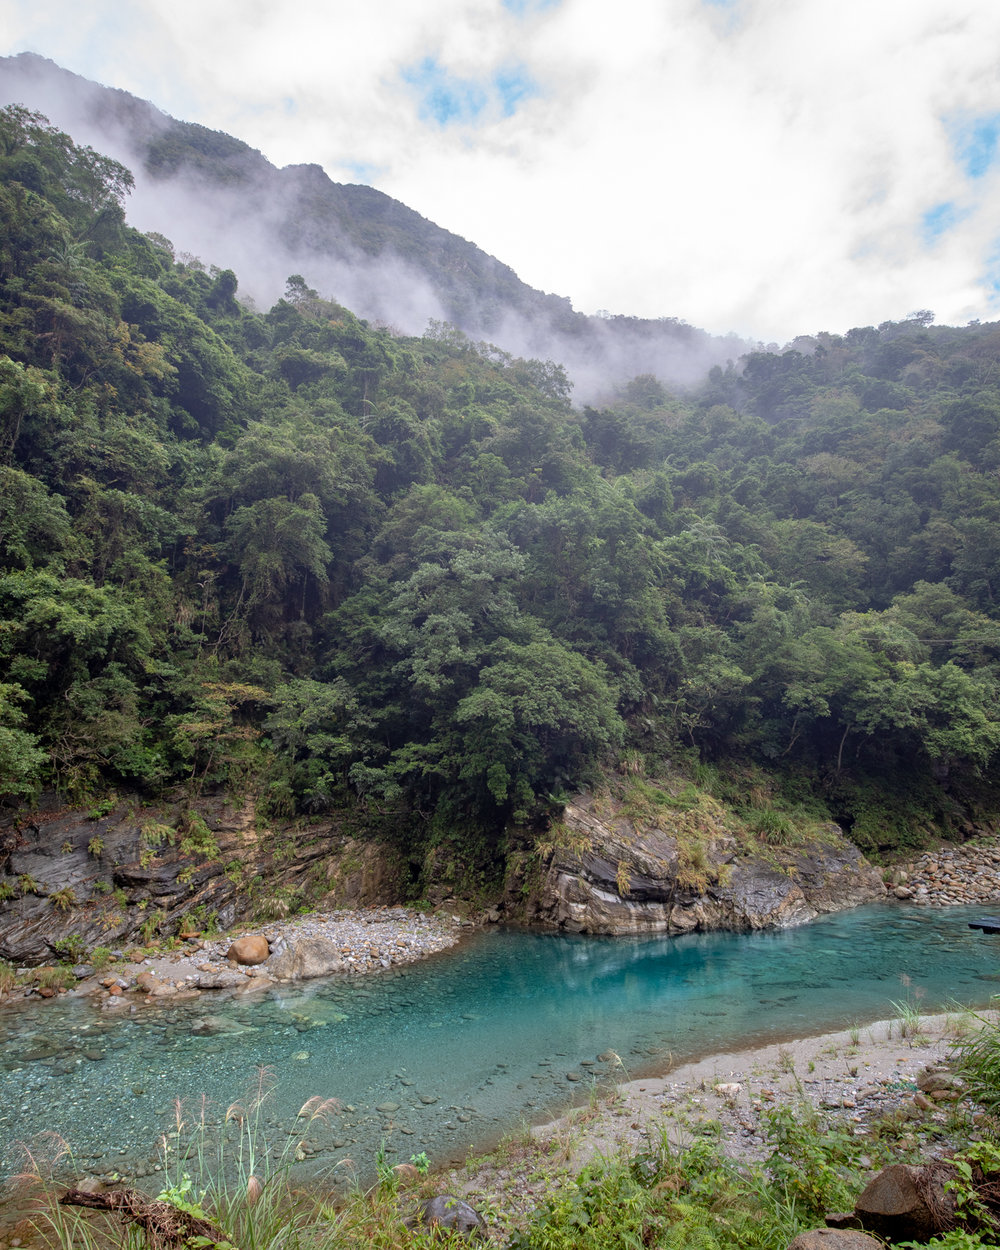 The blue water on the Shakadang Trail in Taroko Gorge